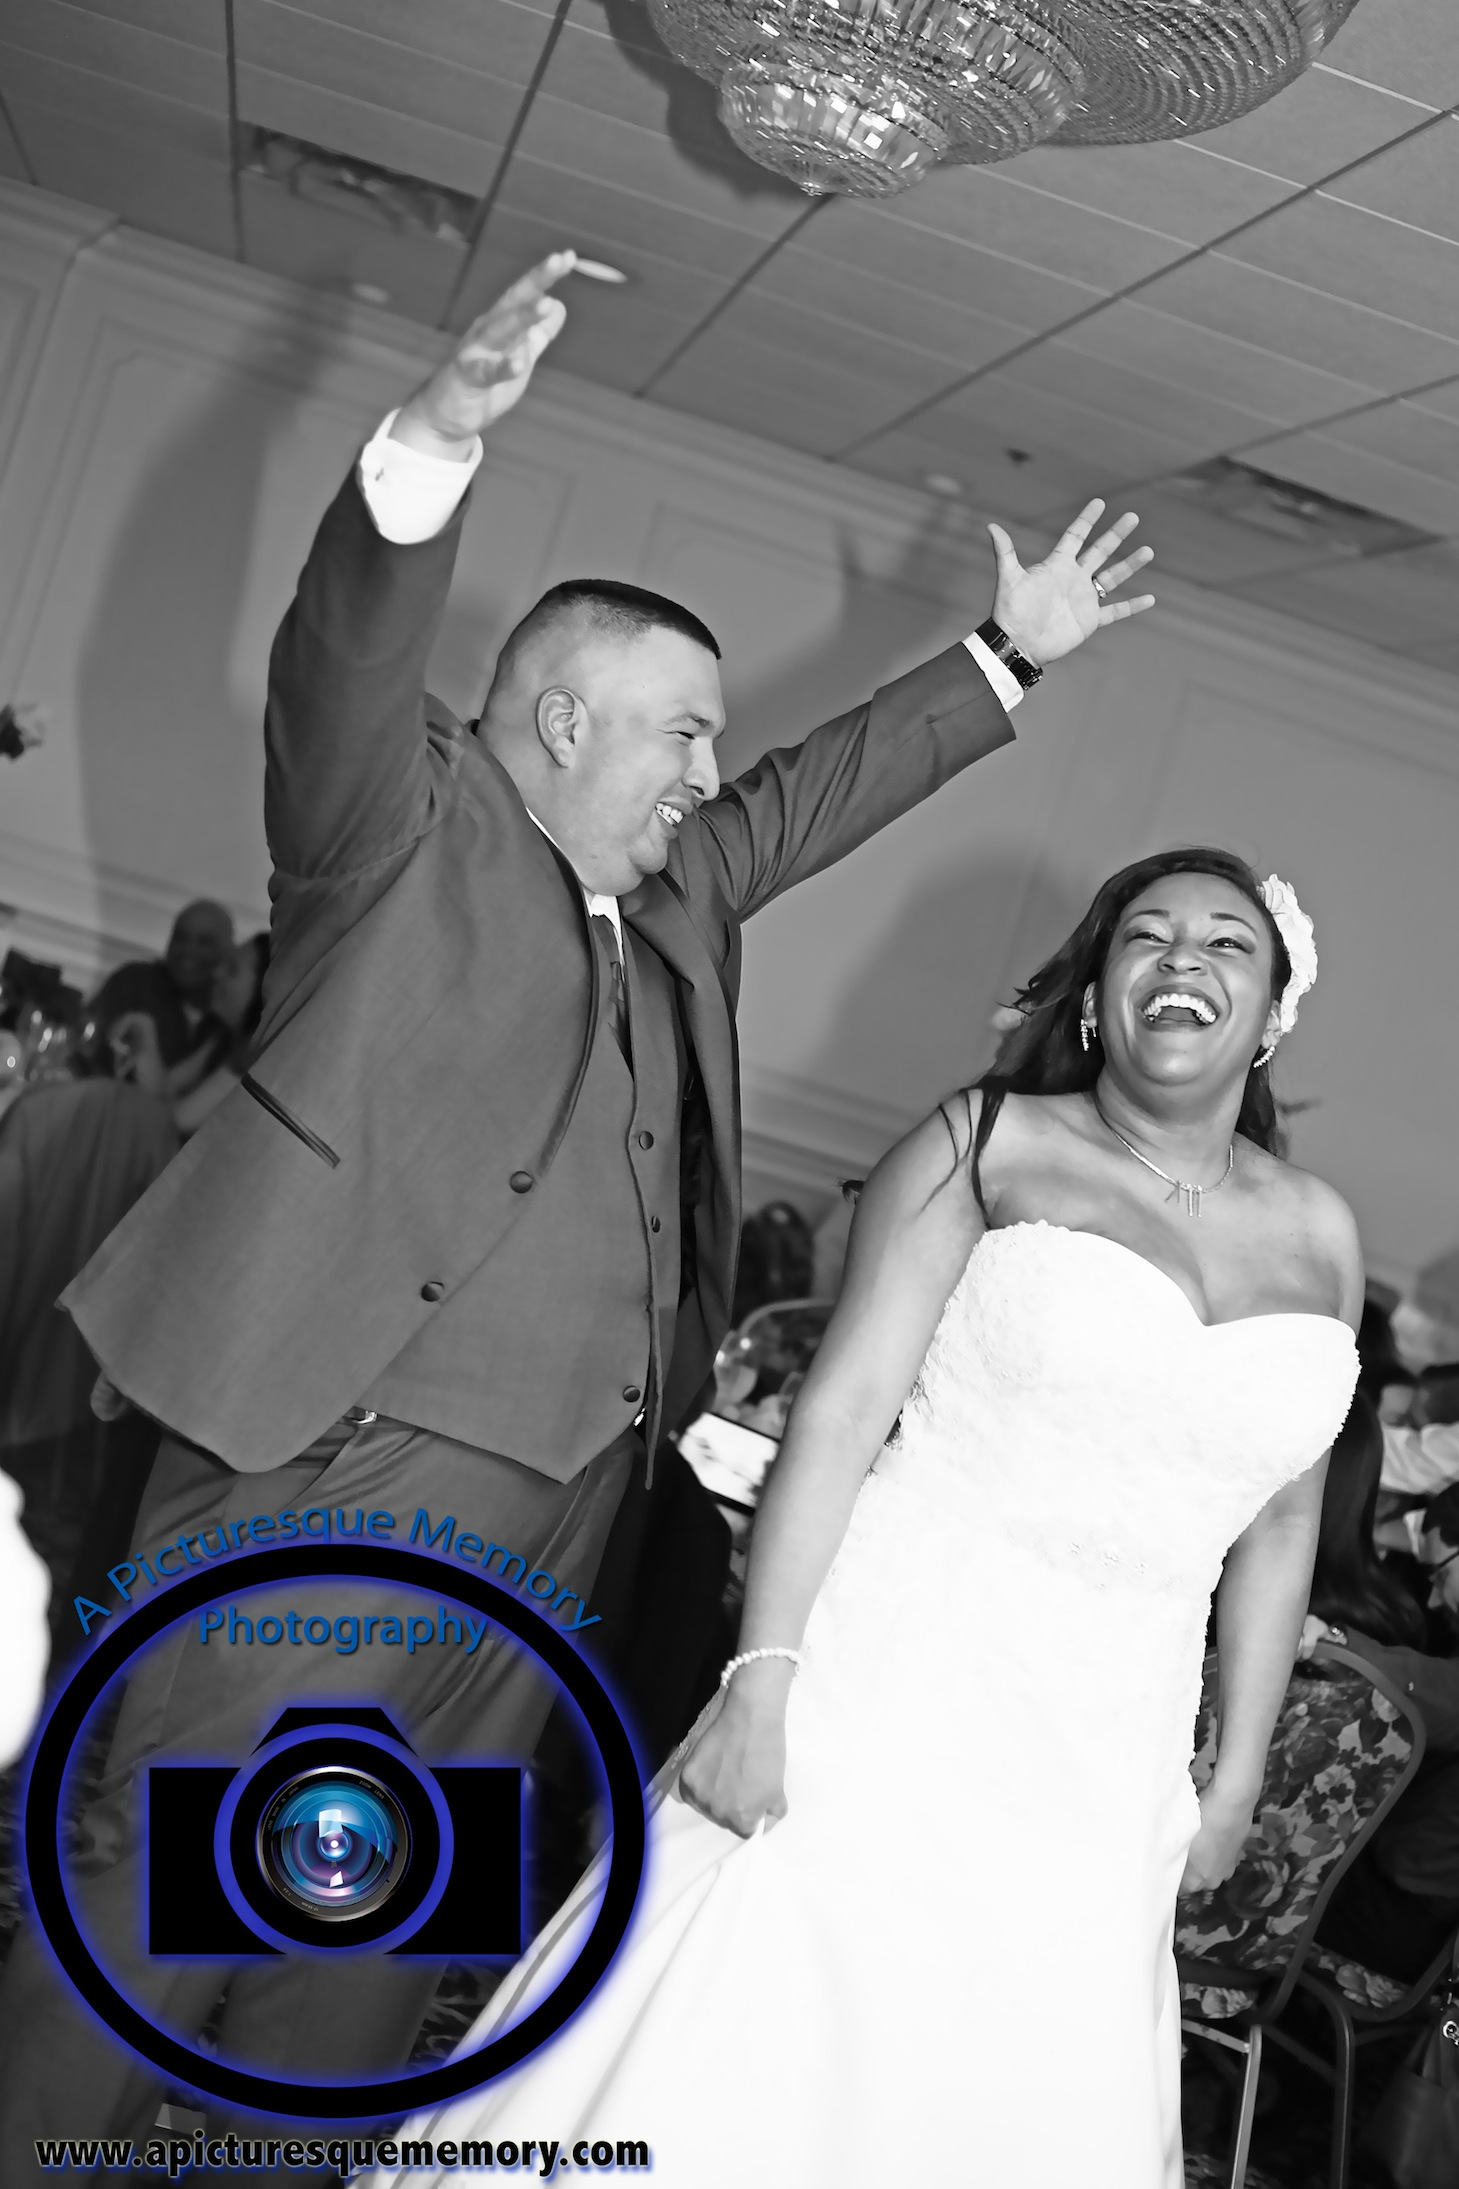 #njwedding, #njweddingphotography, #southbrunswickweddingphotographer#weddingphotos, #apicturesquememoryphotography, #pierresofsouthbrunswickweddingphotographer, #brideandgroomdancing2